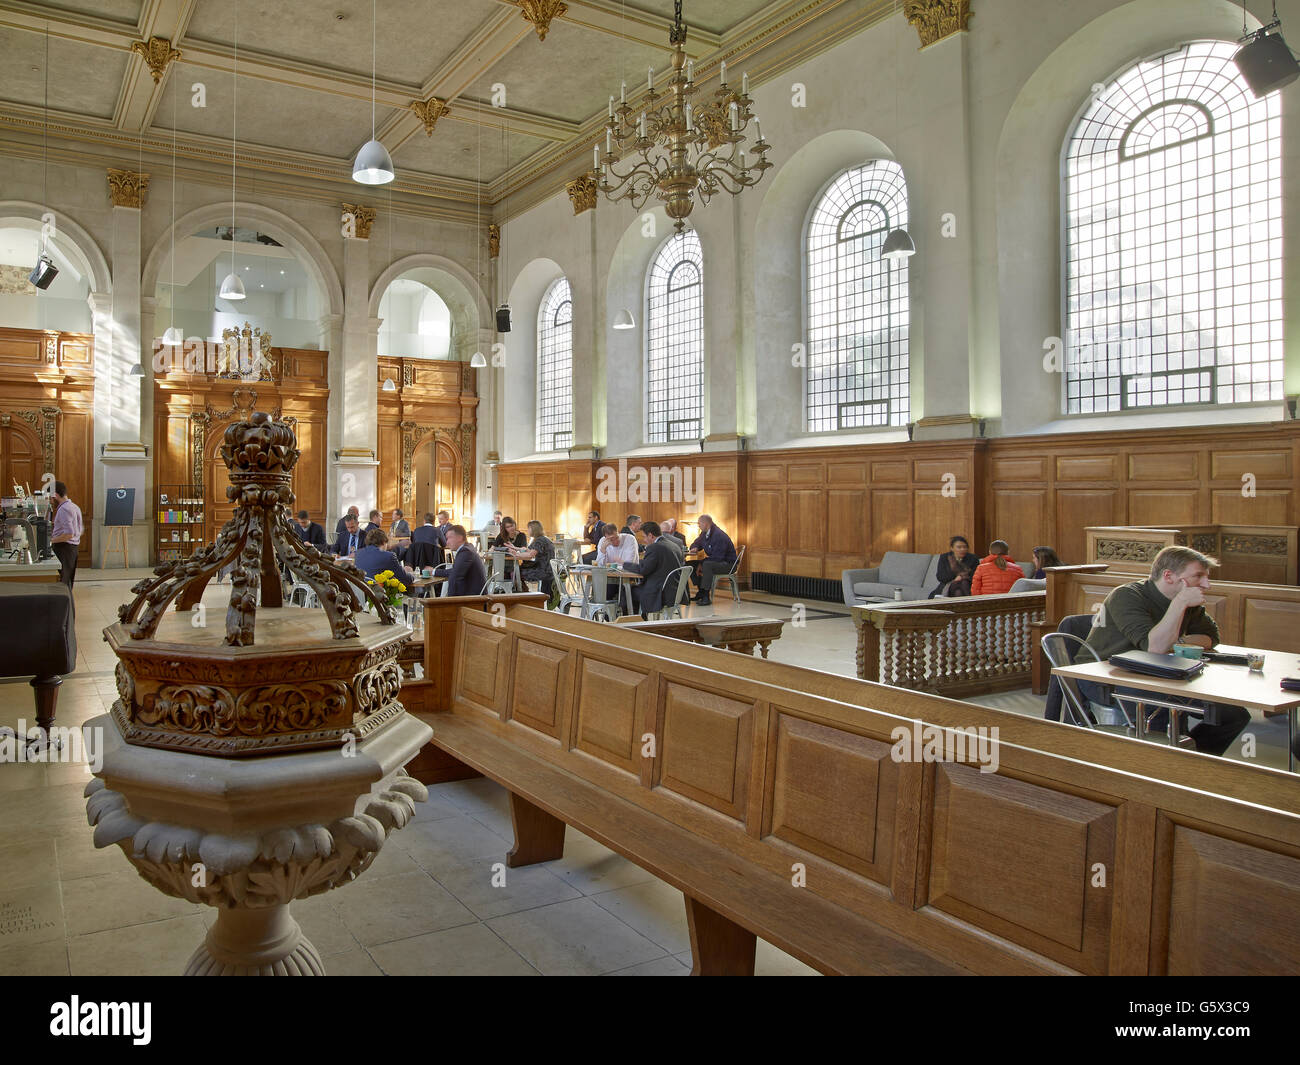 St Nicholas Cole Abbey, church in the City of London; interior converted to a cafe - Stock Image